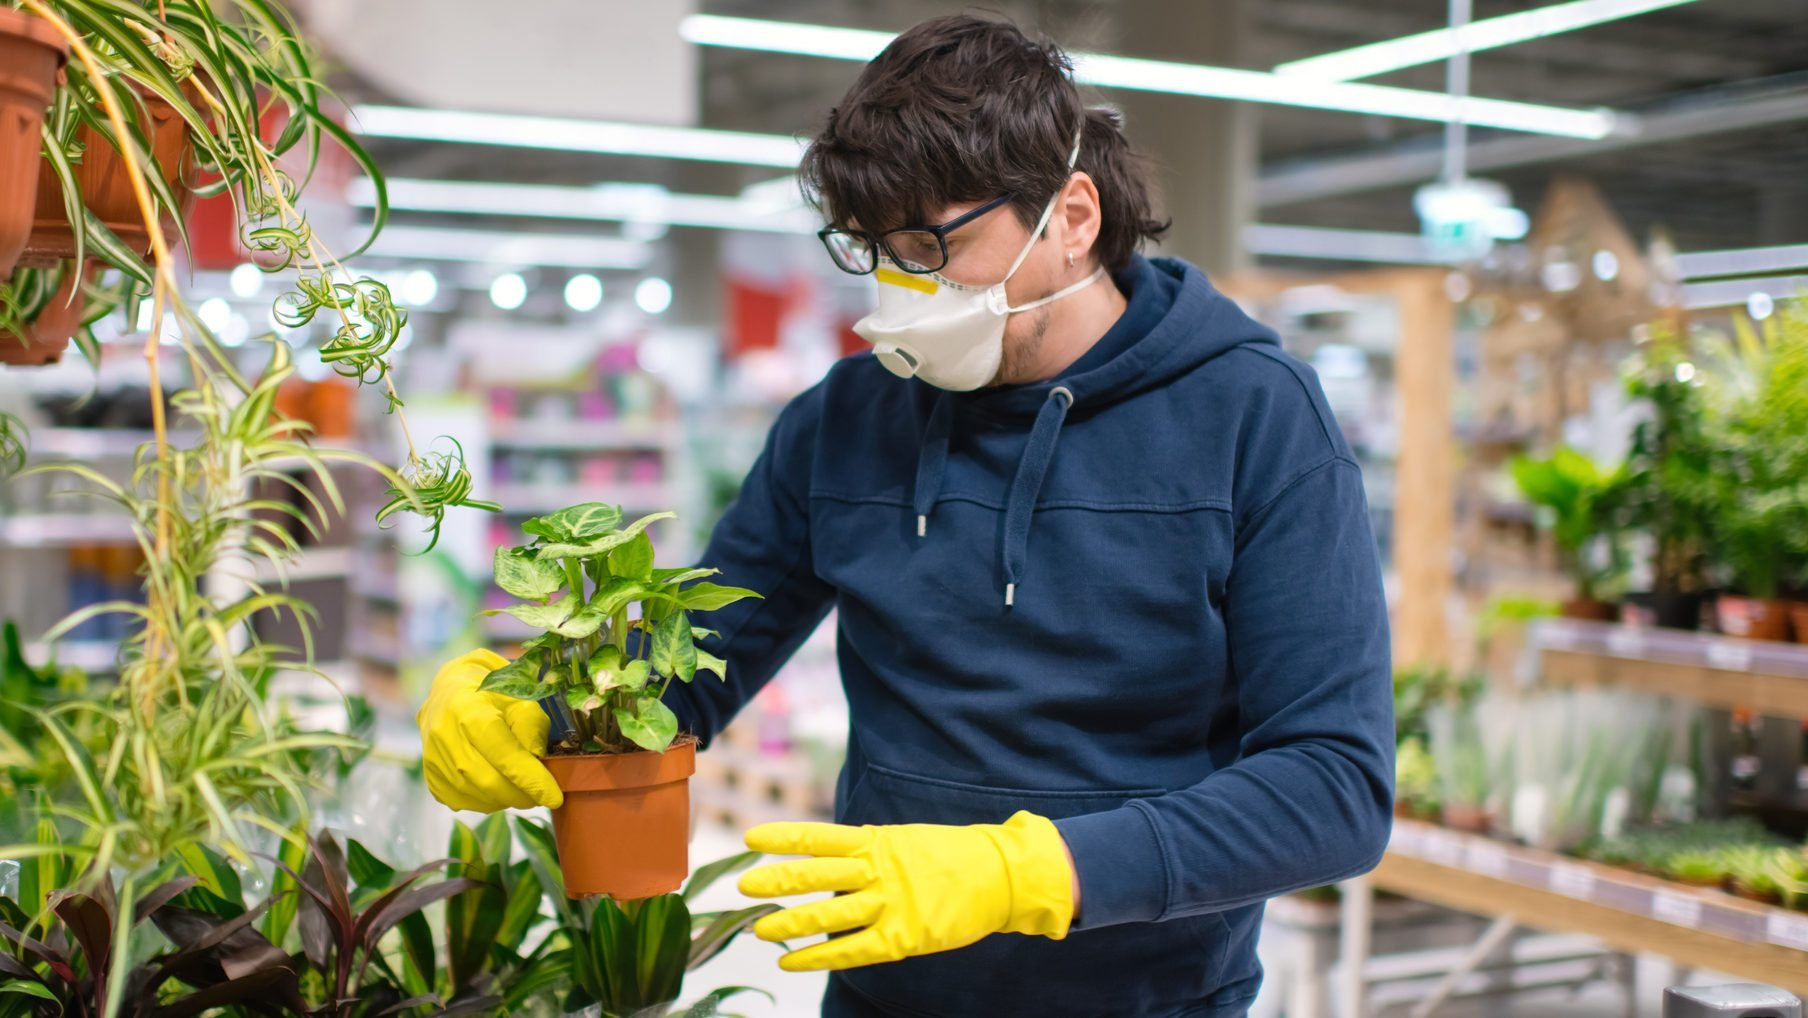 Man in mask and rubber gloves choosing a plant in a garden center